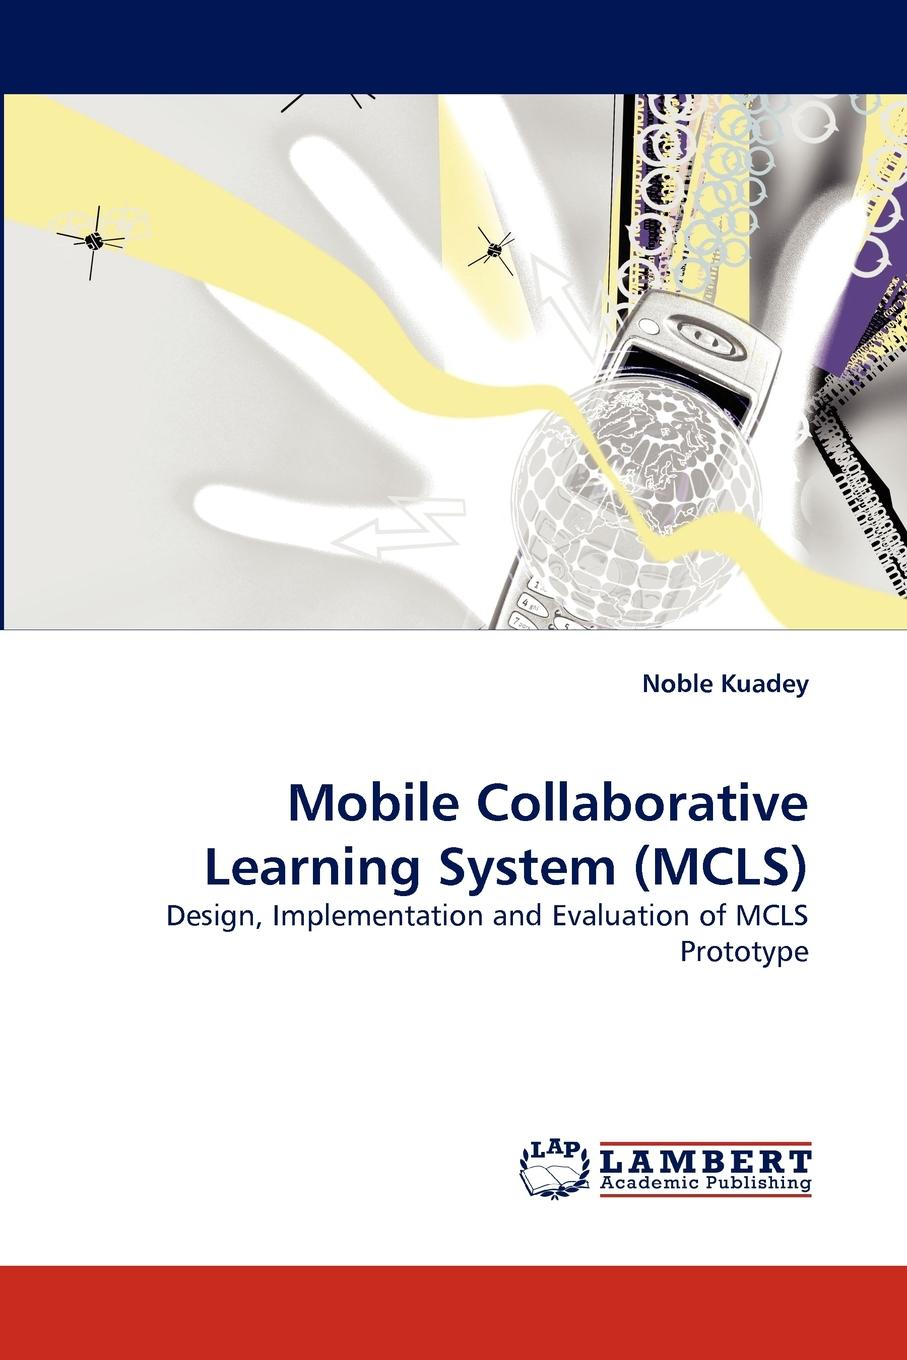 Noble Kuadey Mobile Collaborative Learning System (MCLS) jal mehta learning that lasts challenging engaging and empowering students with deeper instruction